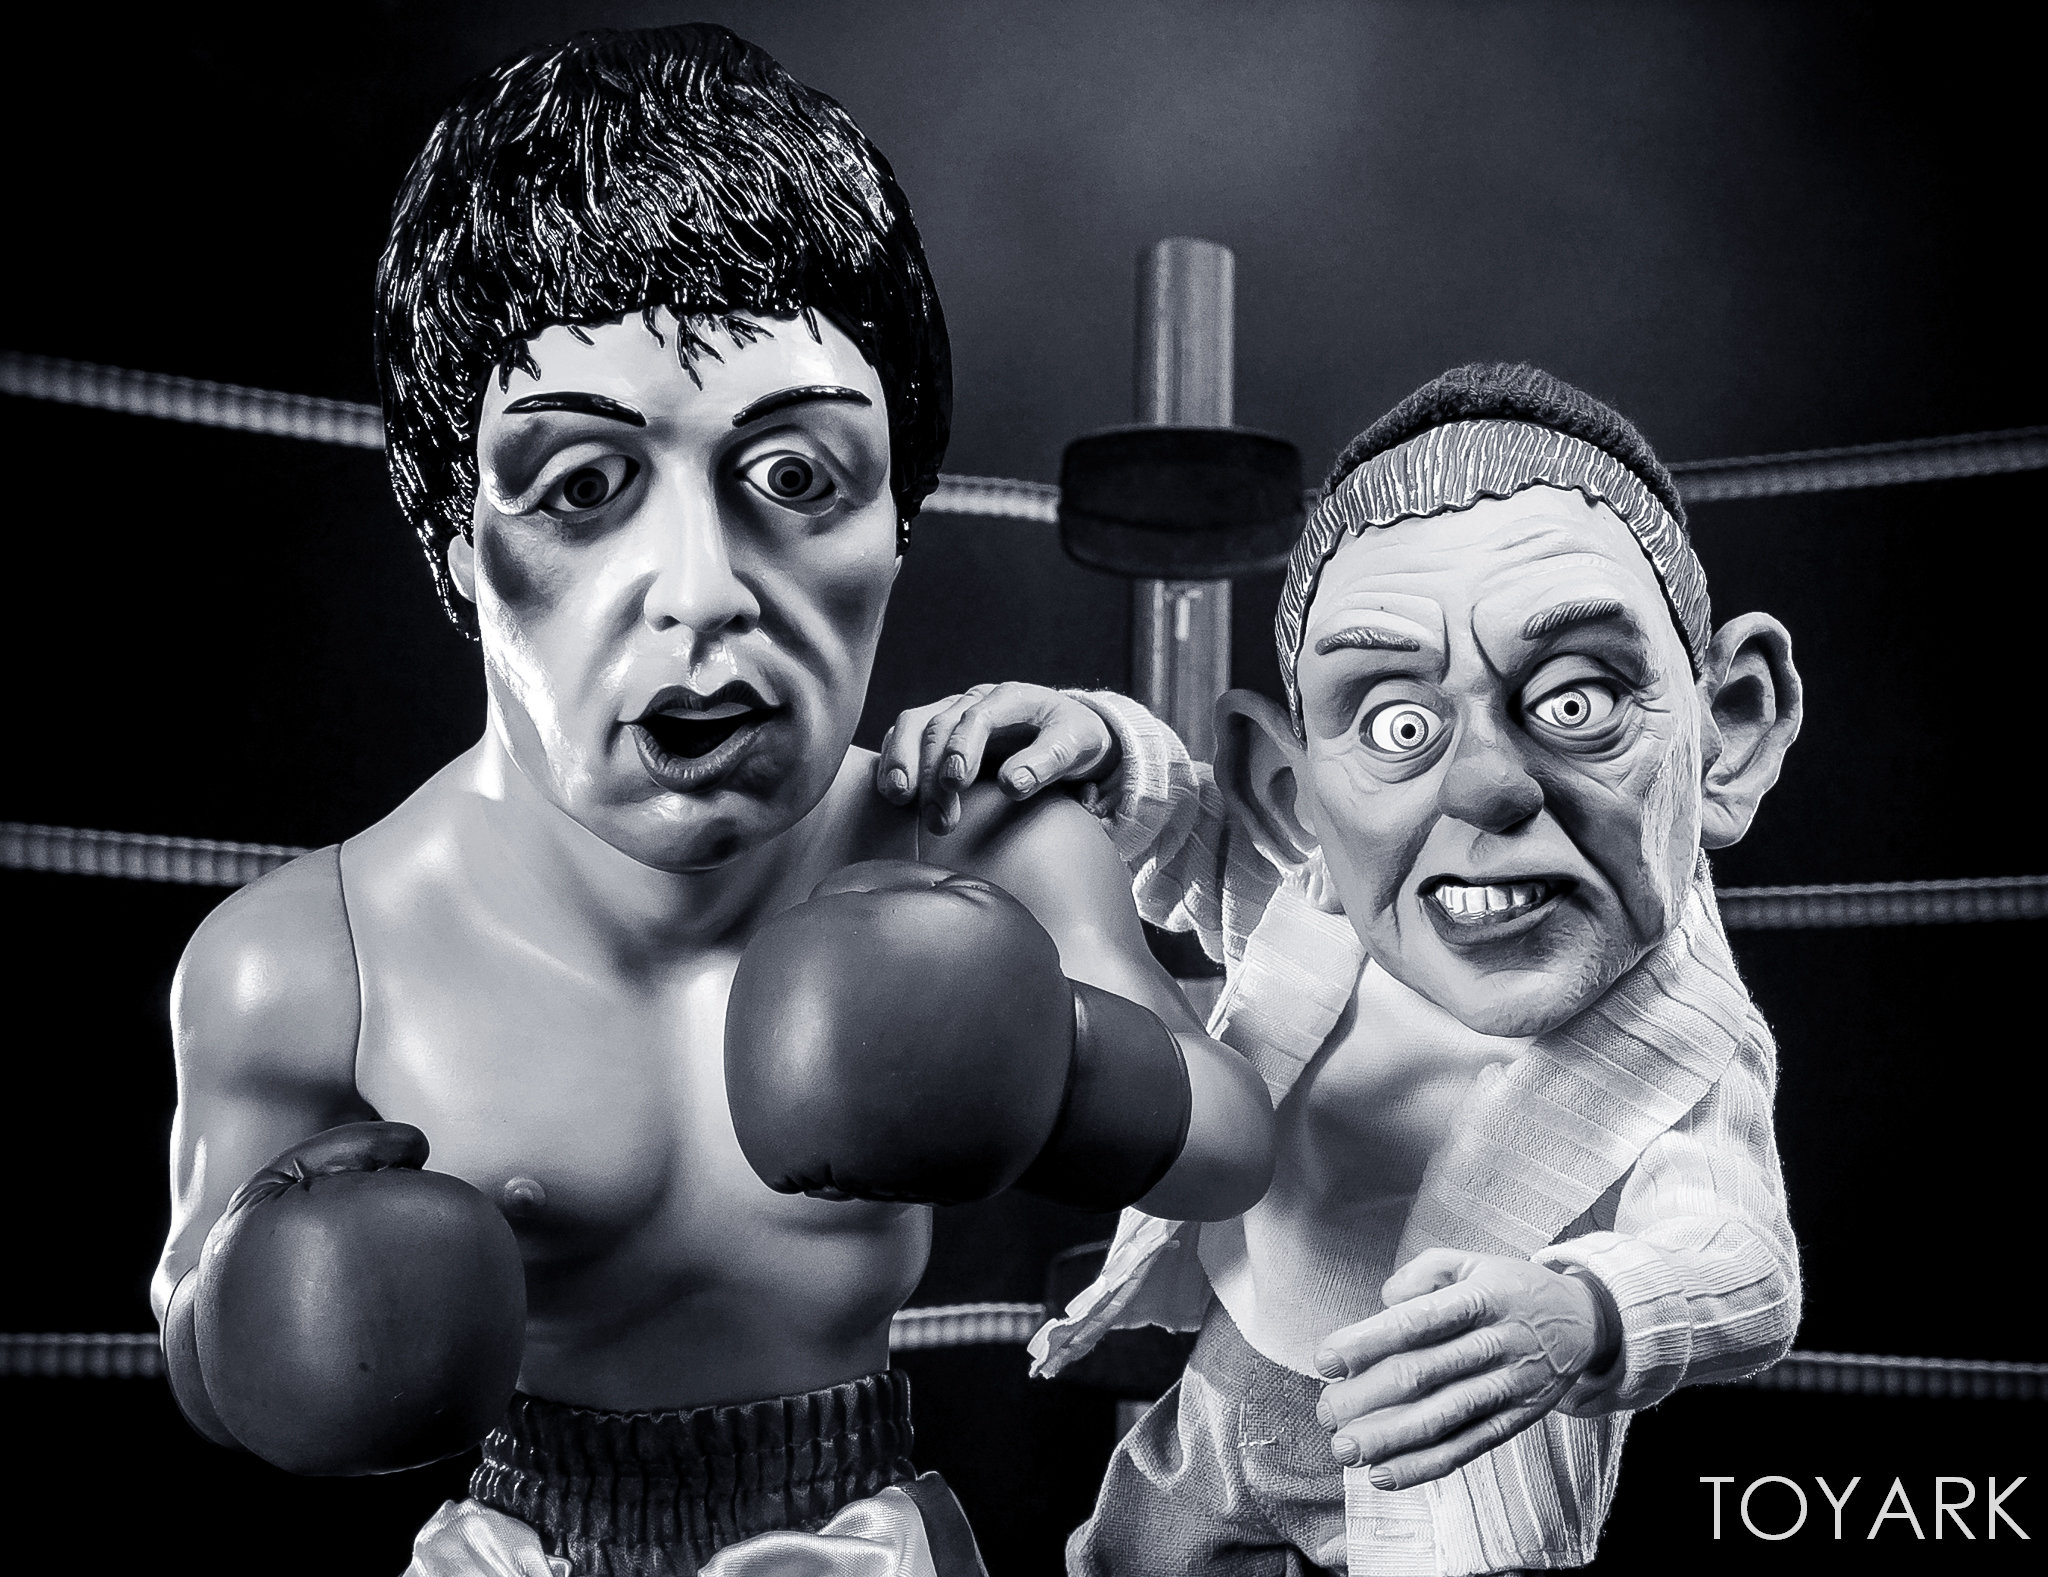 https://news.toyark.com/wp-content/uploads/sites/4/2018/07/NECA-Rocky-and-Mickey-Statues-035.jpg